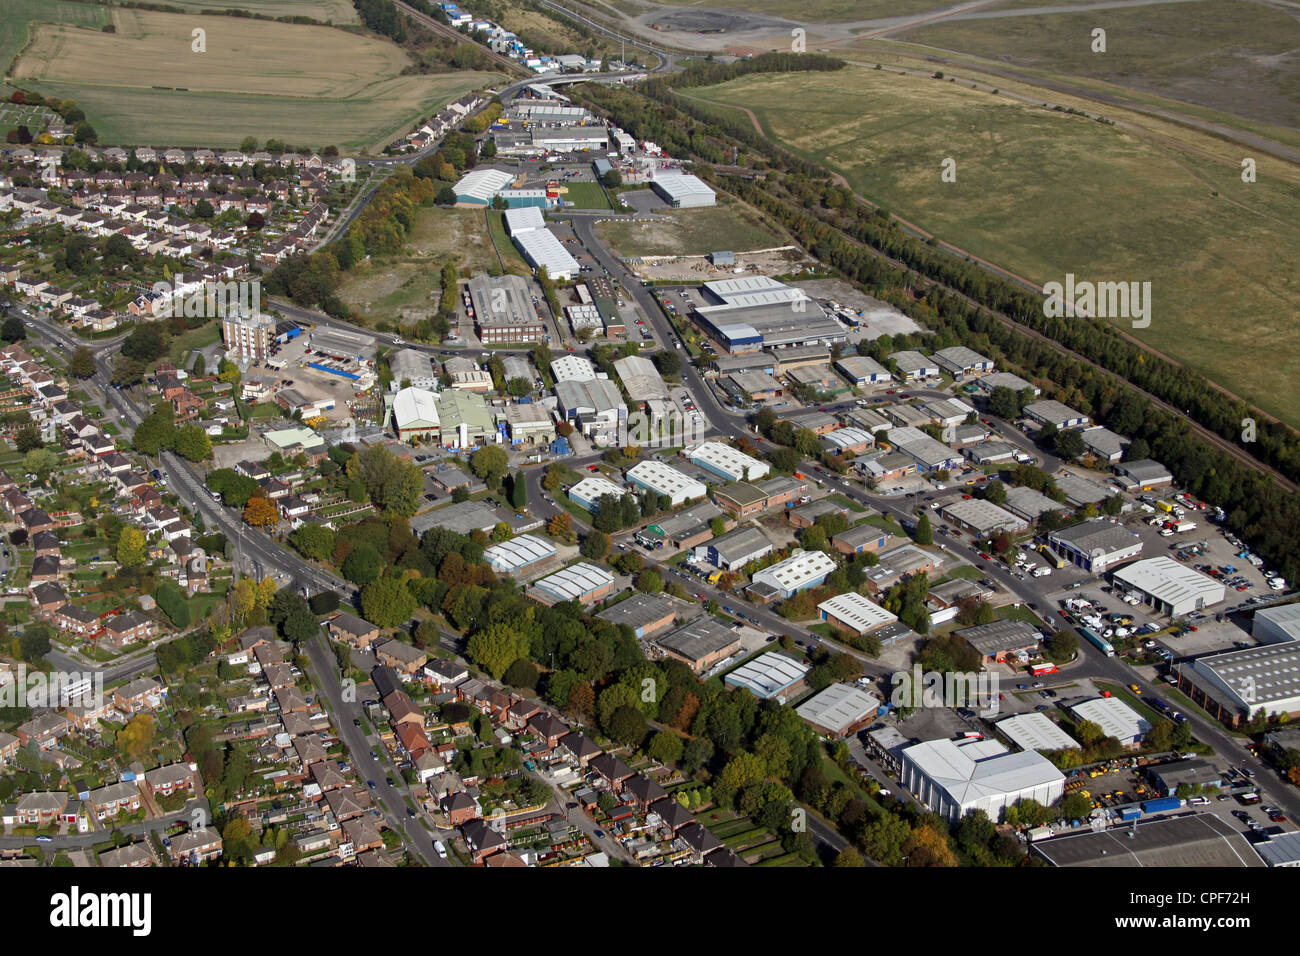 aerial view of Dore House Farm Industrial Estate at Orgreave, Sheffield - Stock Image